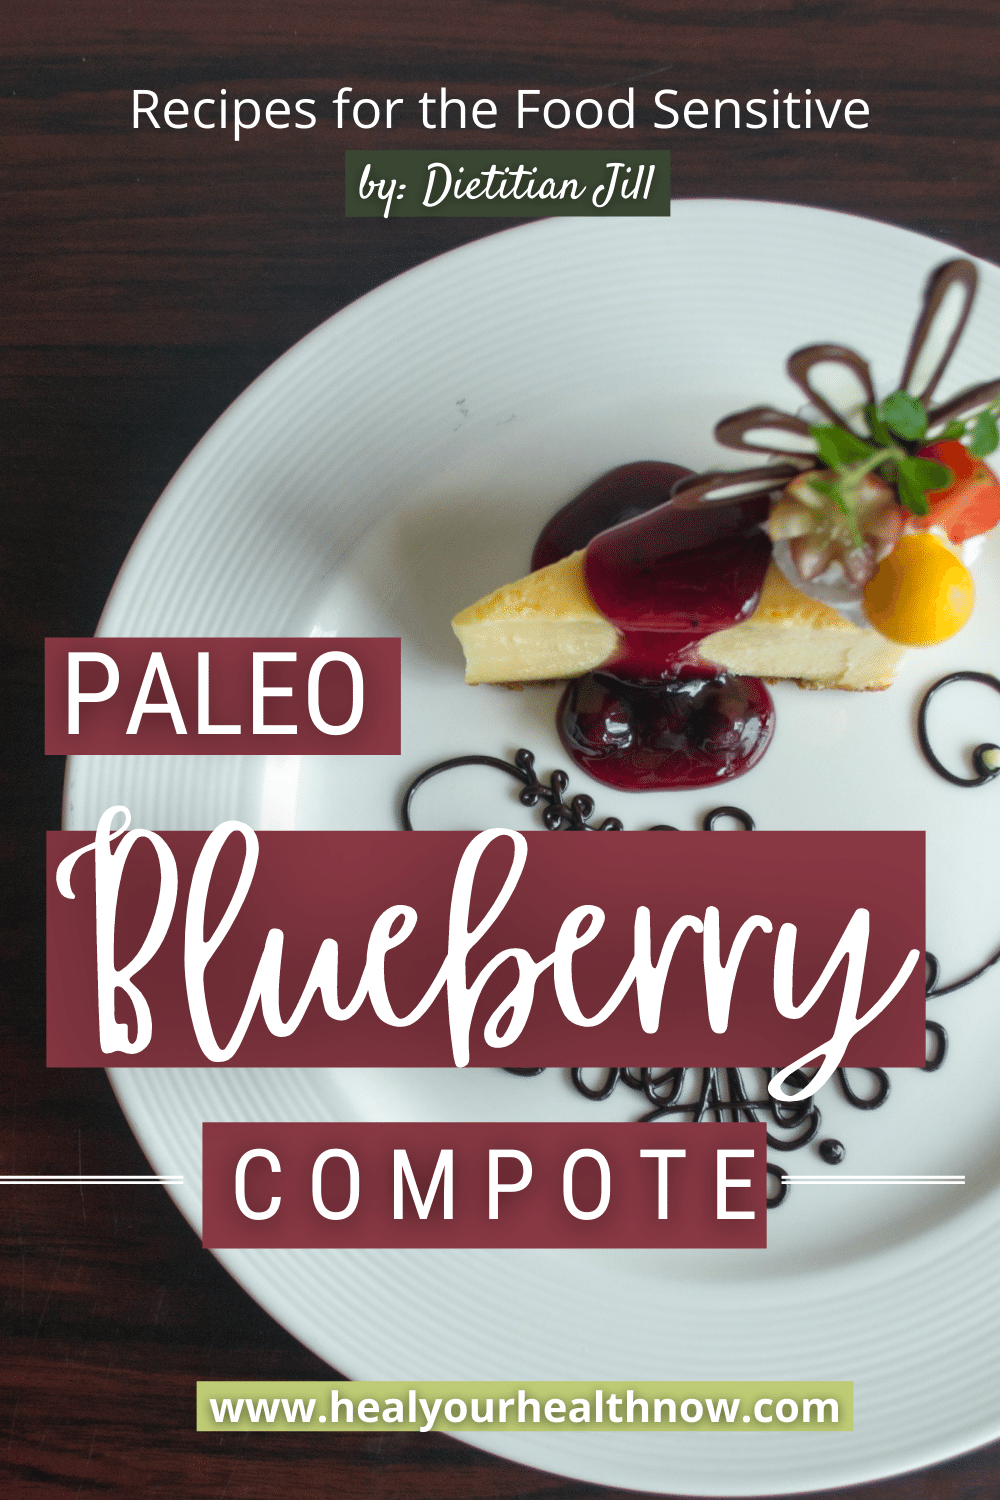 Paleo Blueberry Compote